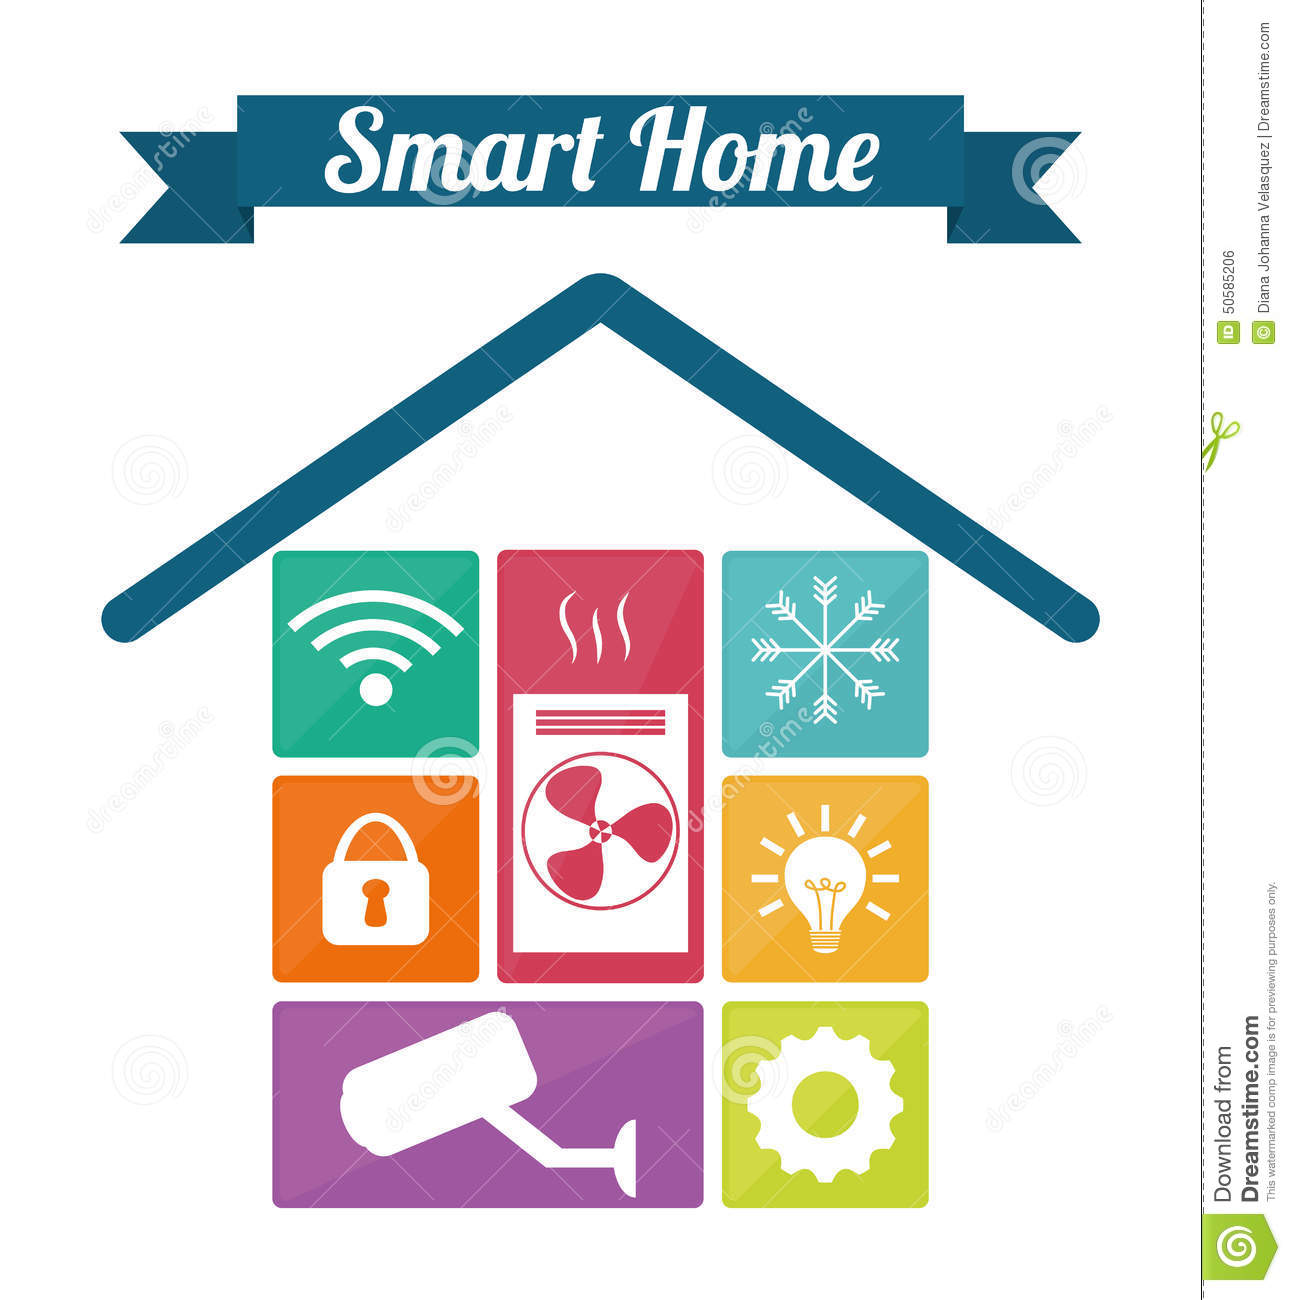 how to design a smart home gooosencom smart home design